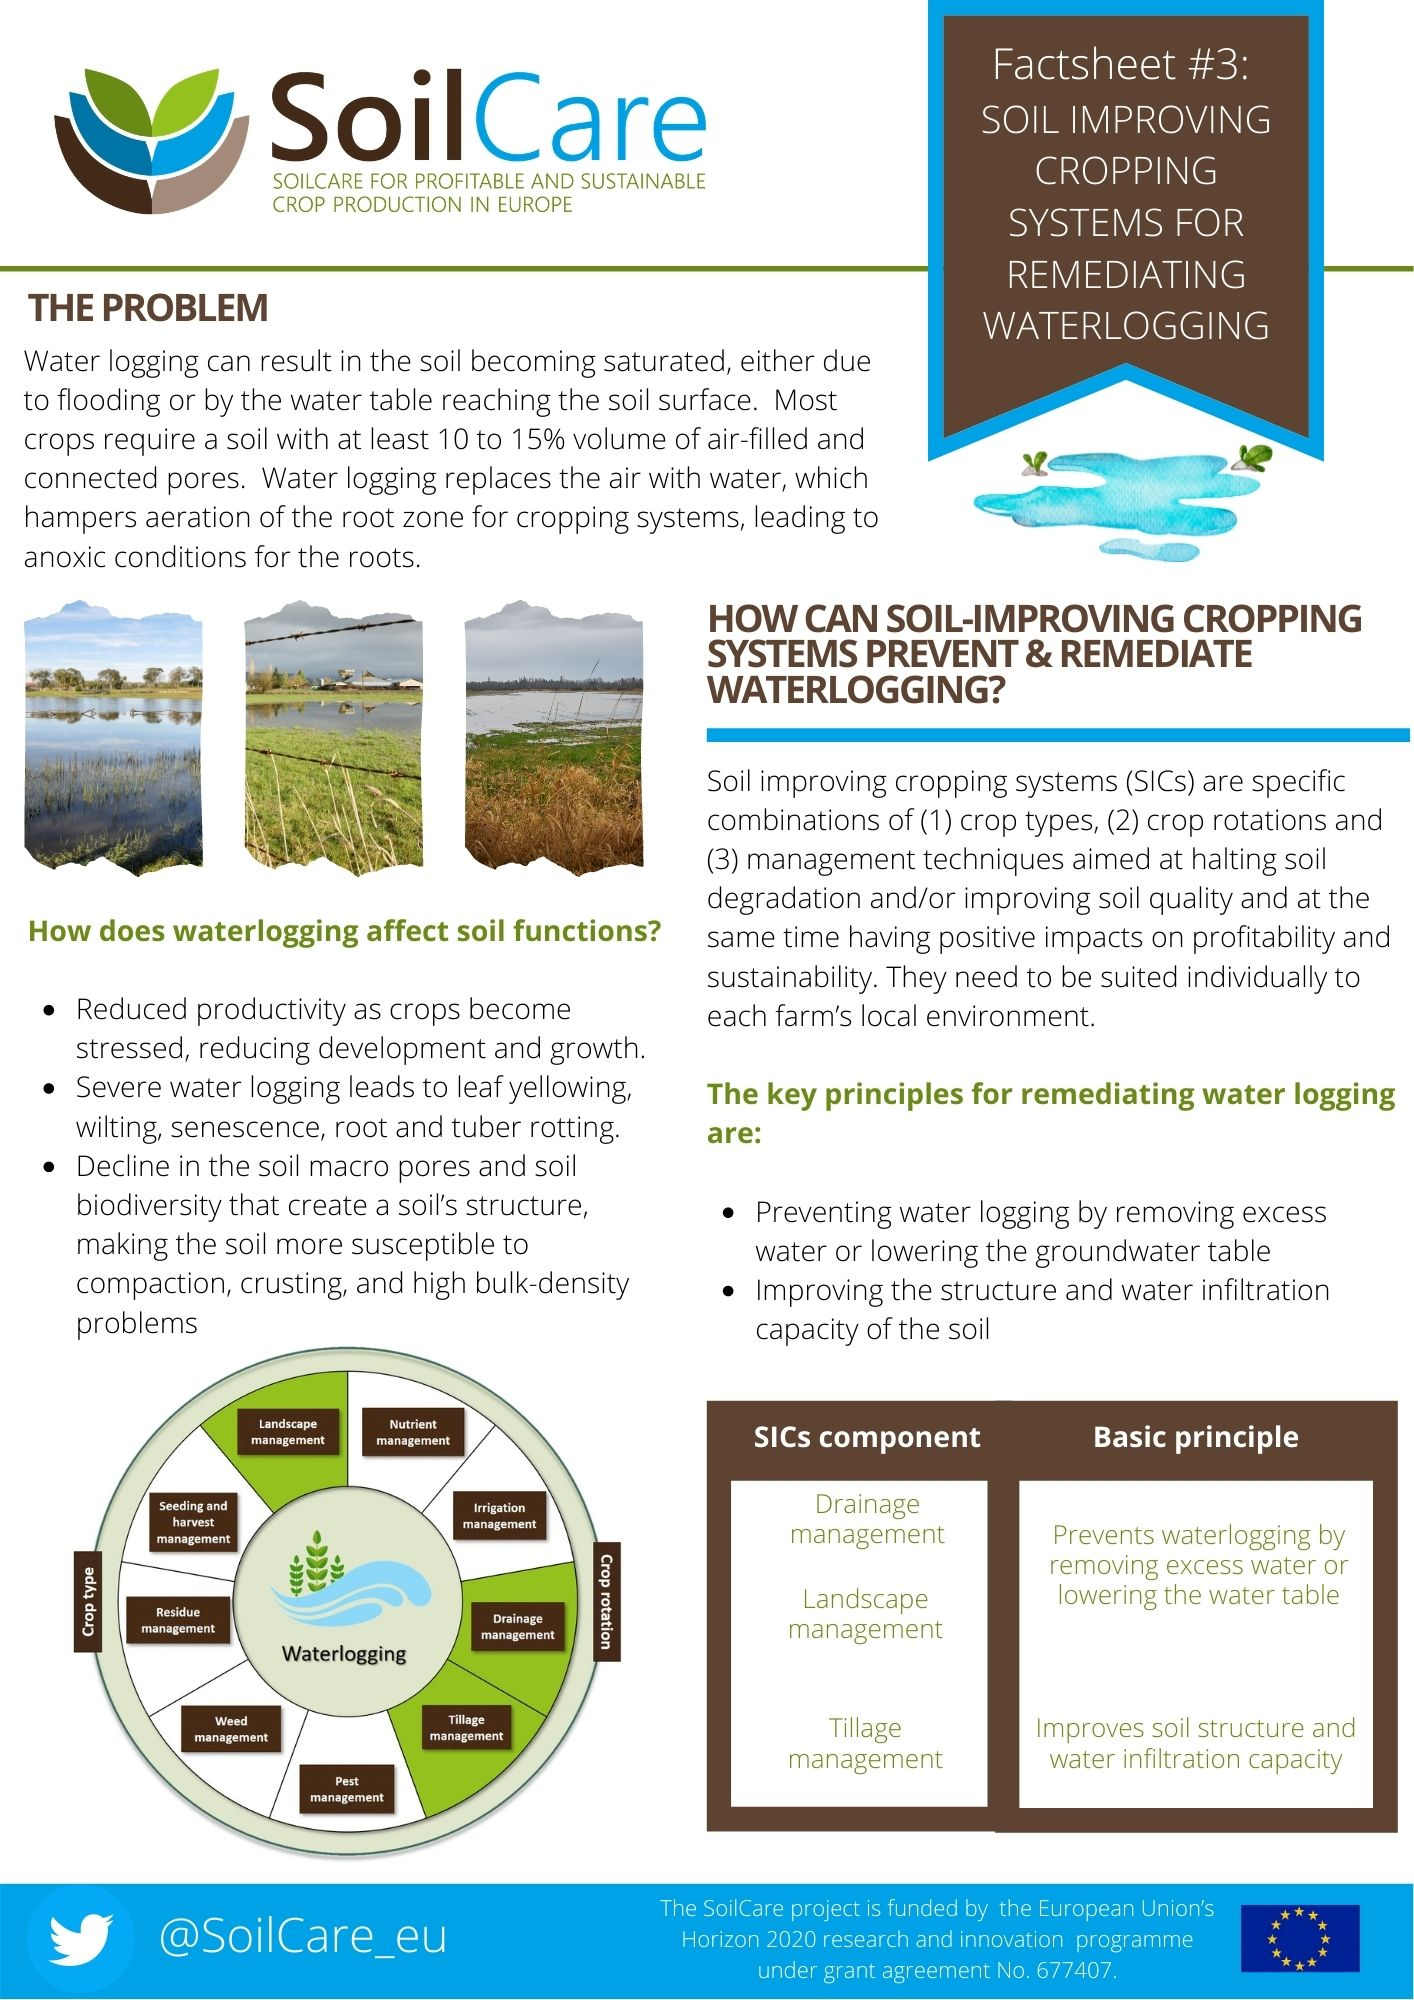 SoilCare waterlogging factsheet 2